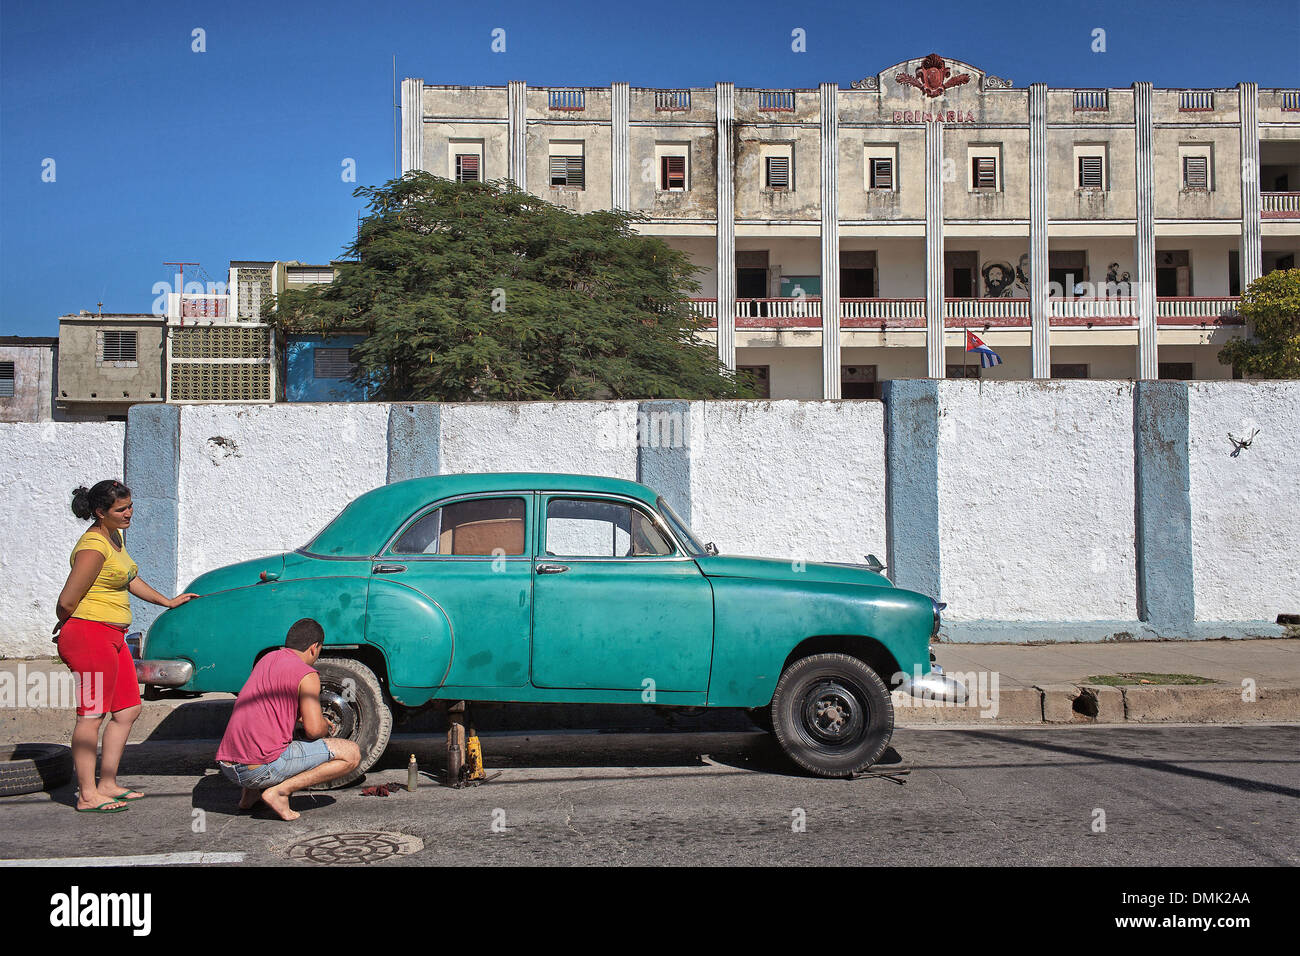 REPAIR OF AN OLD CAR IN FRONT OF A PRIMARY SCHOOL, STREET AMBIANCE ...